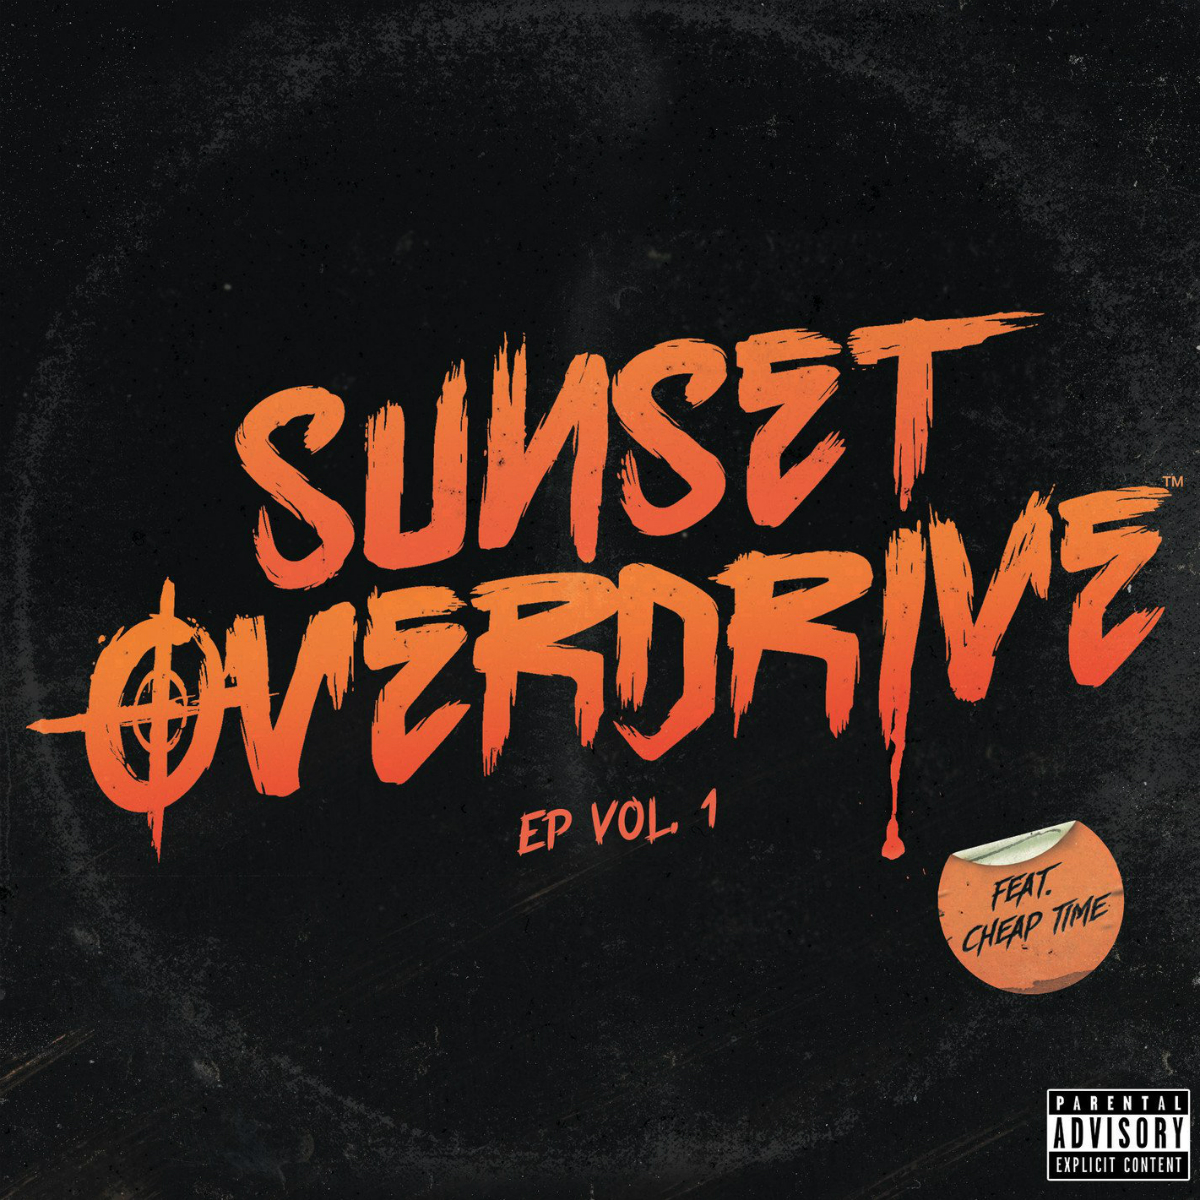 Sunset_Overdrive_EP_1_cover1200x1200.jpg